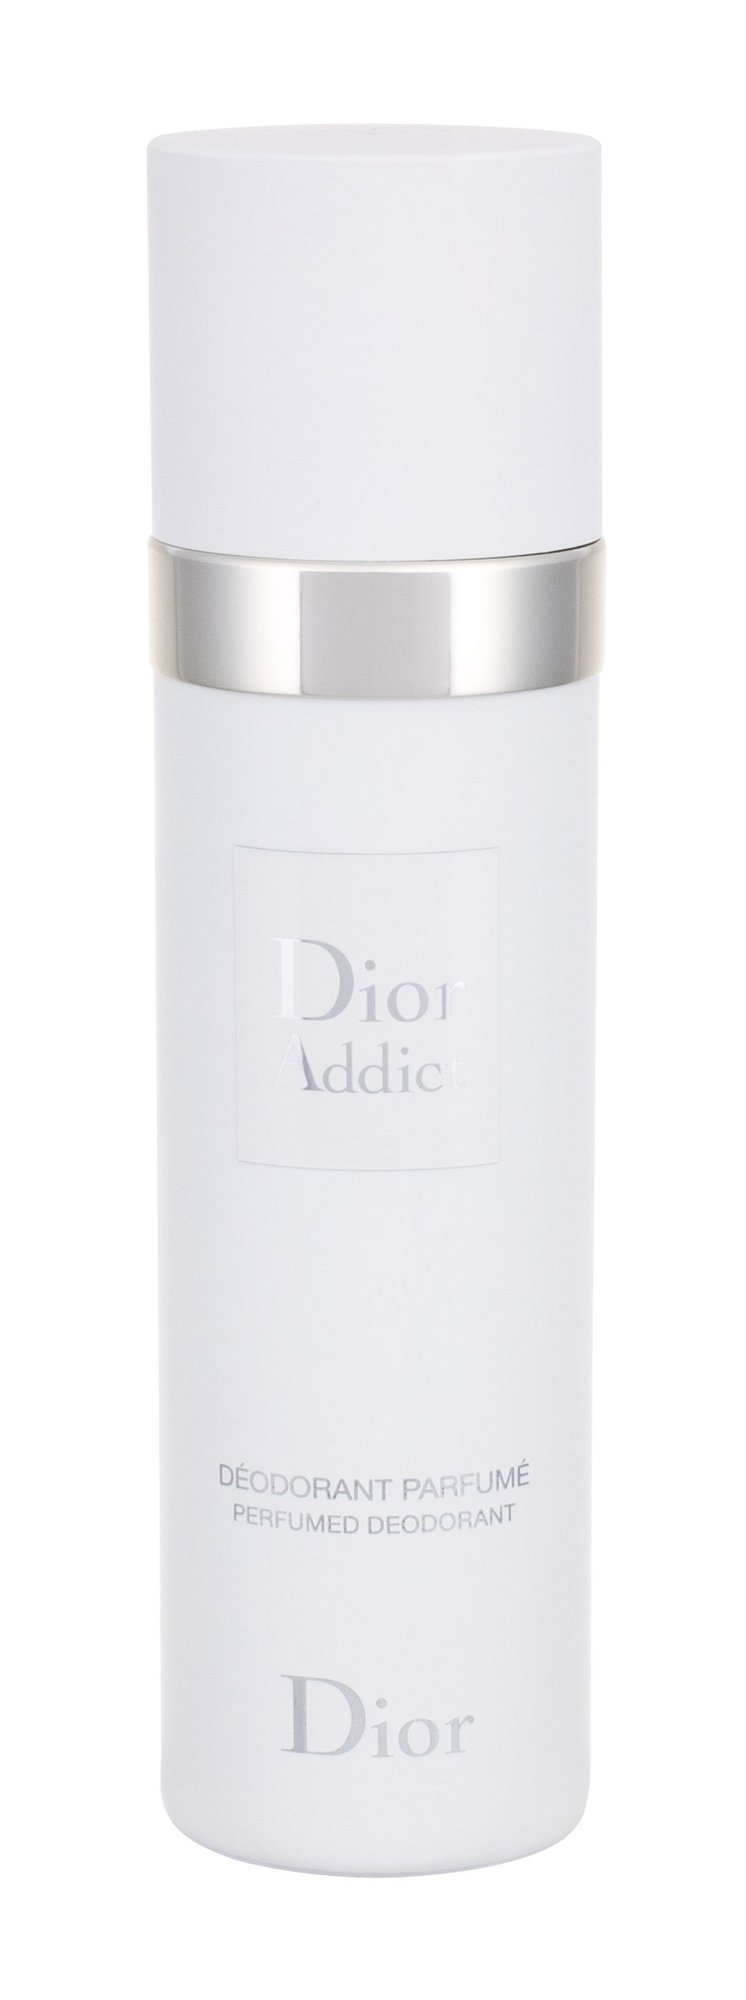 Christian Dior Addict, Deosprey 100ml